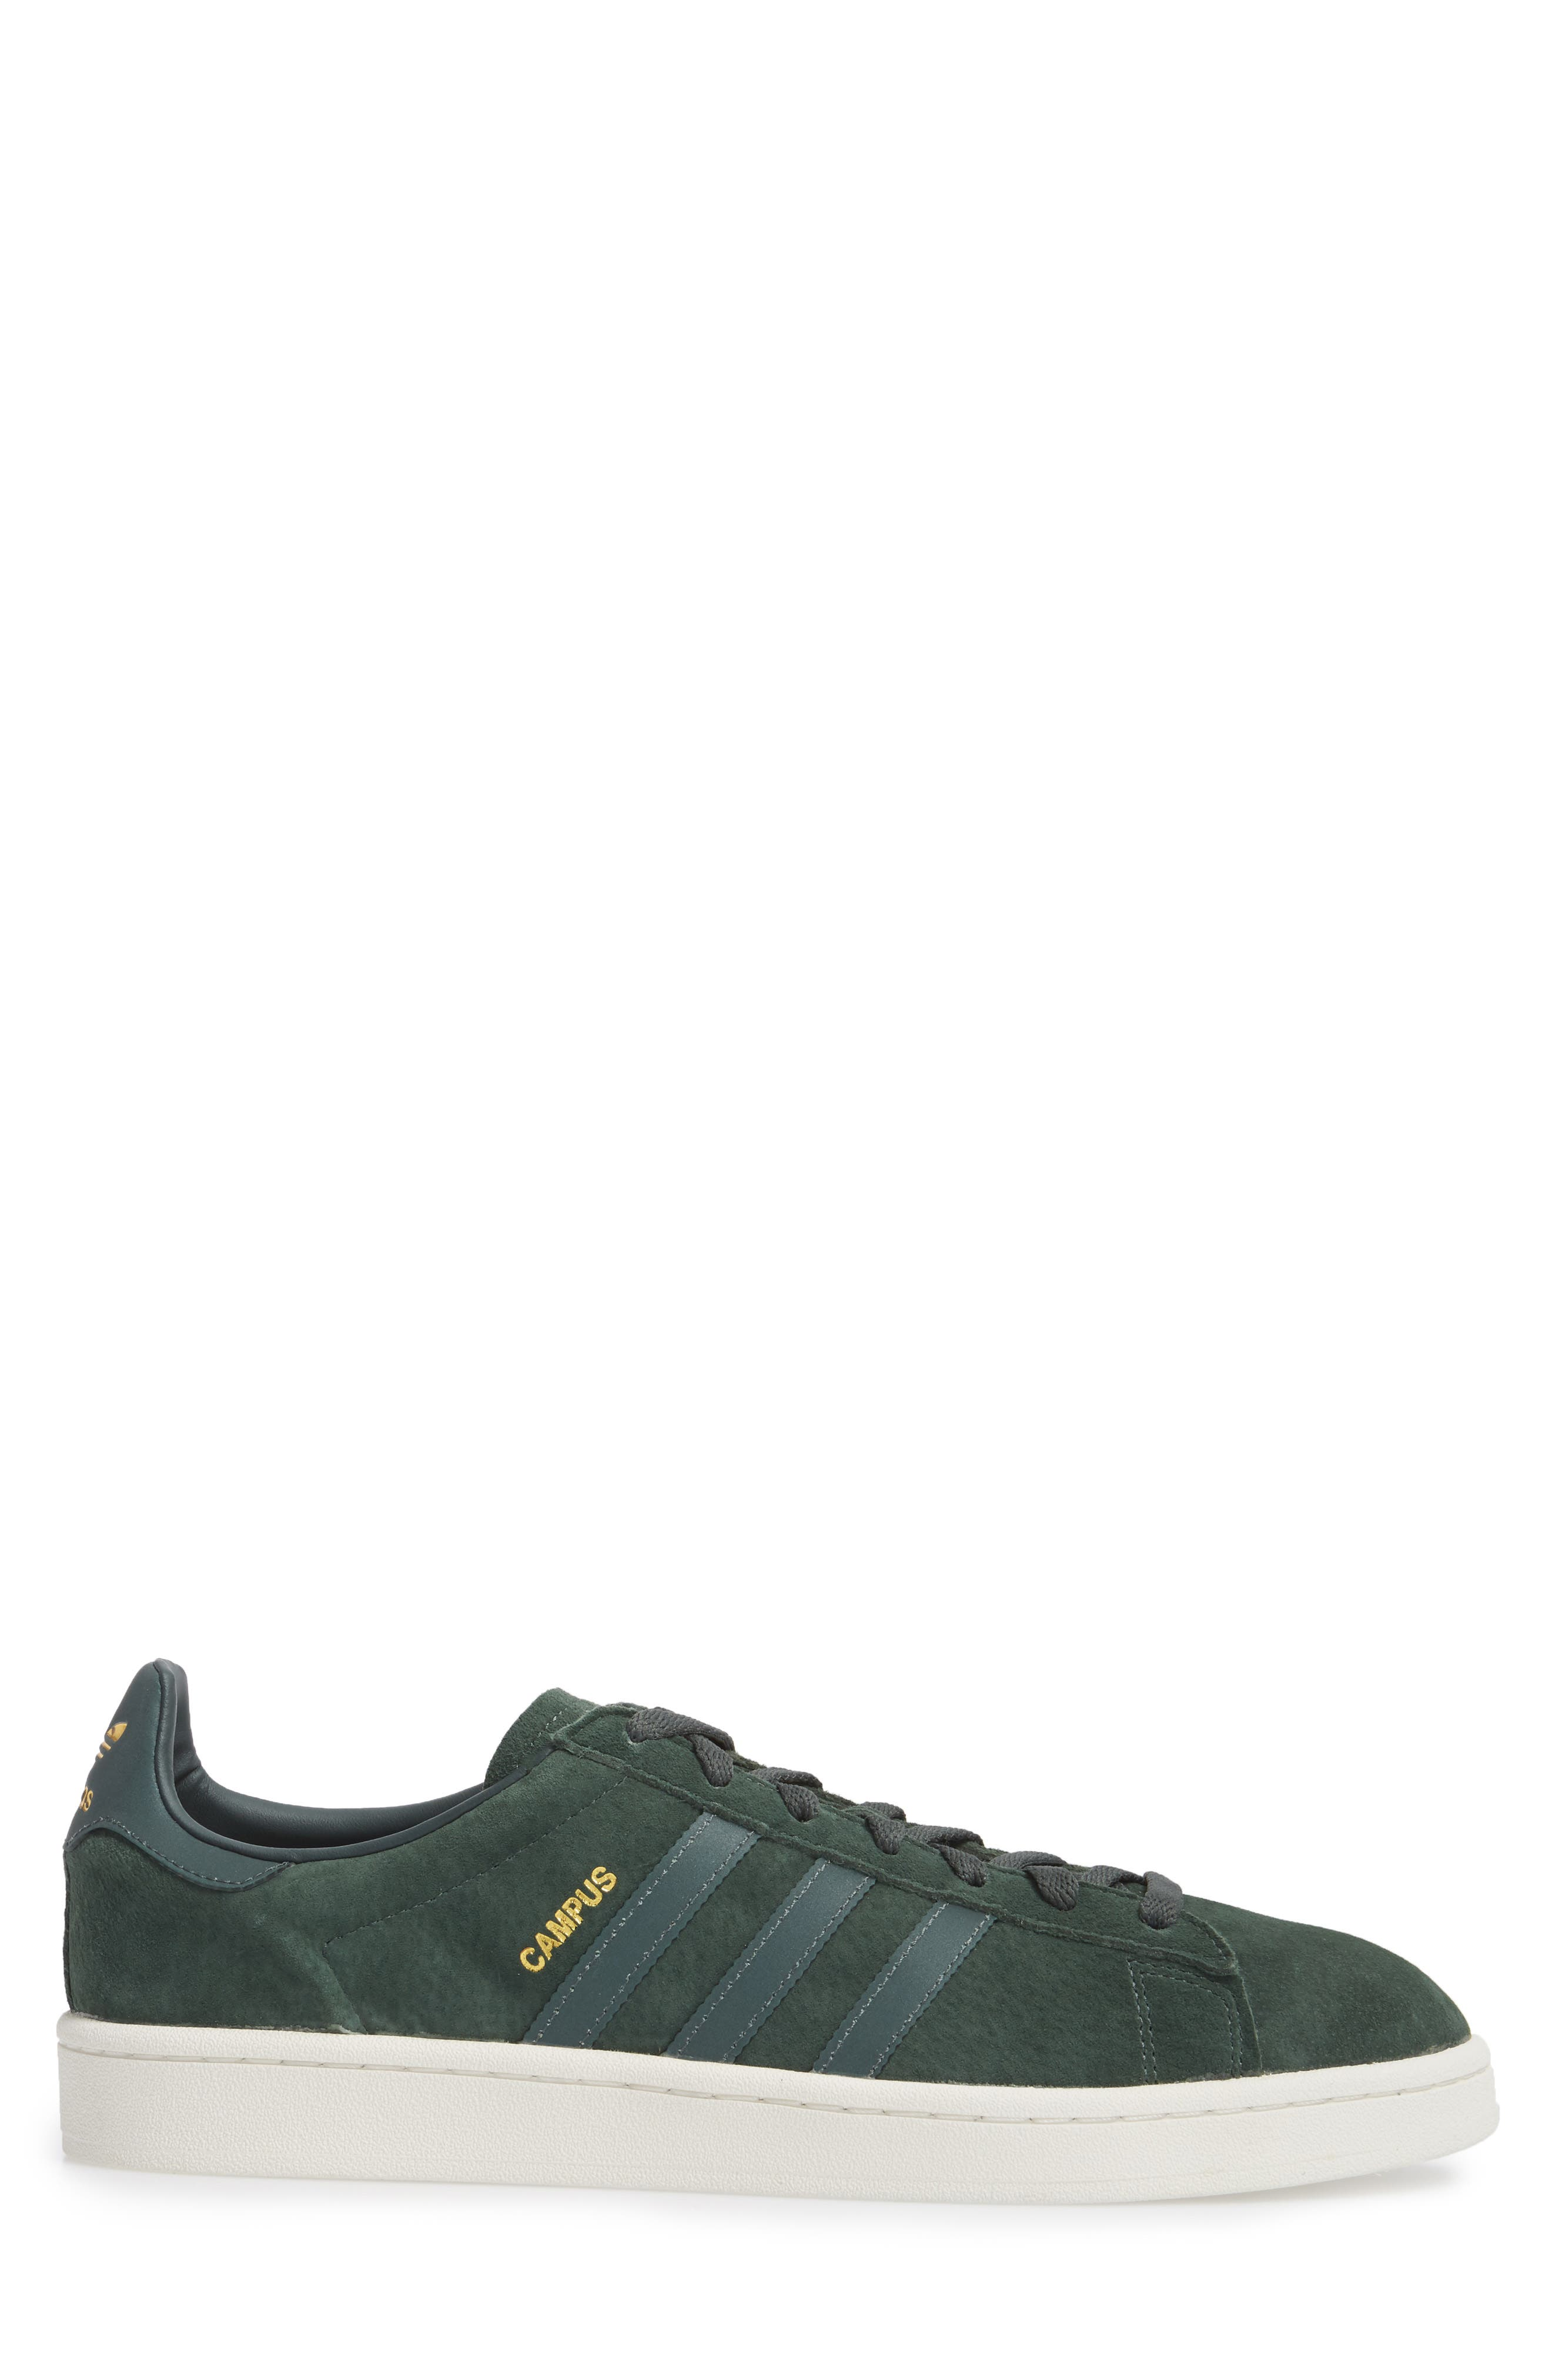 Campus Sneaker,                             Alternate thumbnail 3, color,                             Utility Ivy/ Reflective/ Gold